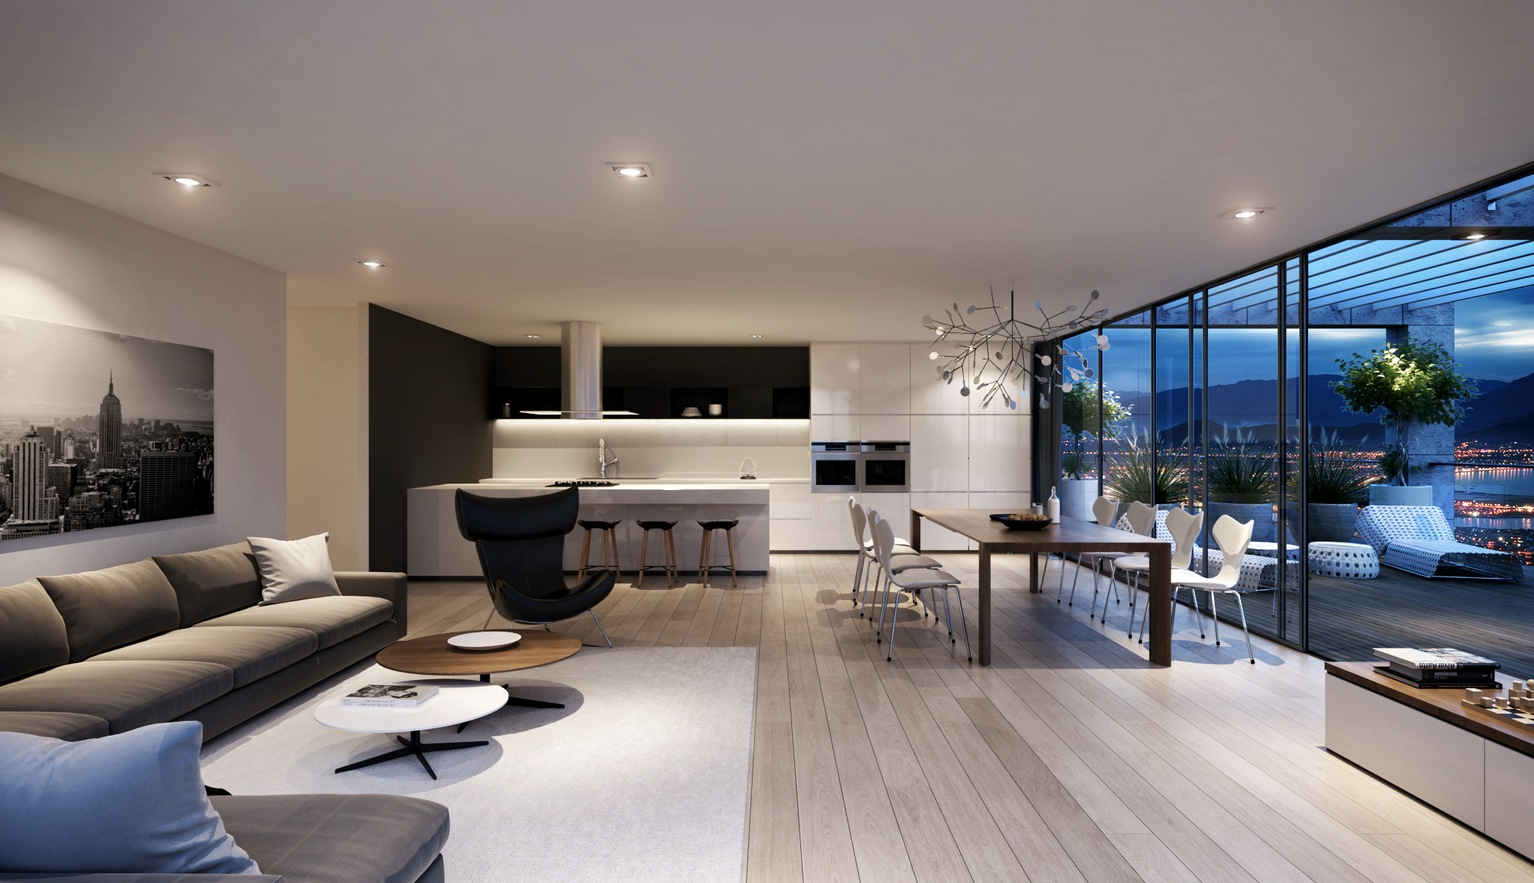 11 Awesome And Trendy Modern Living Room Design Ideas ... on Living Room Decor  id=92826